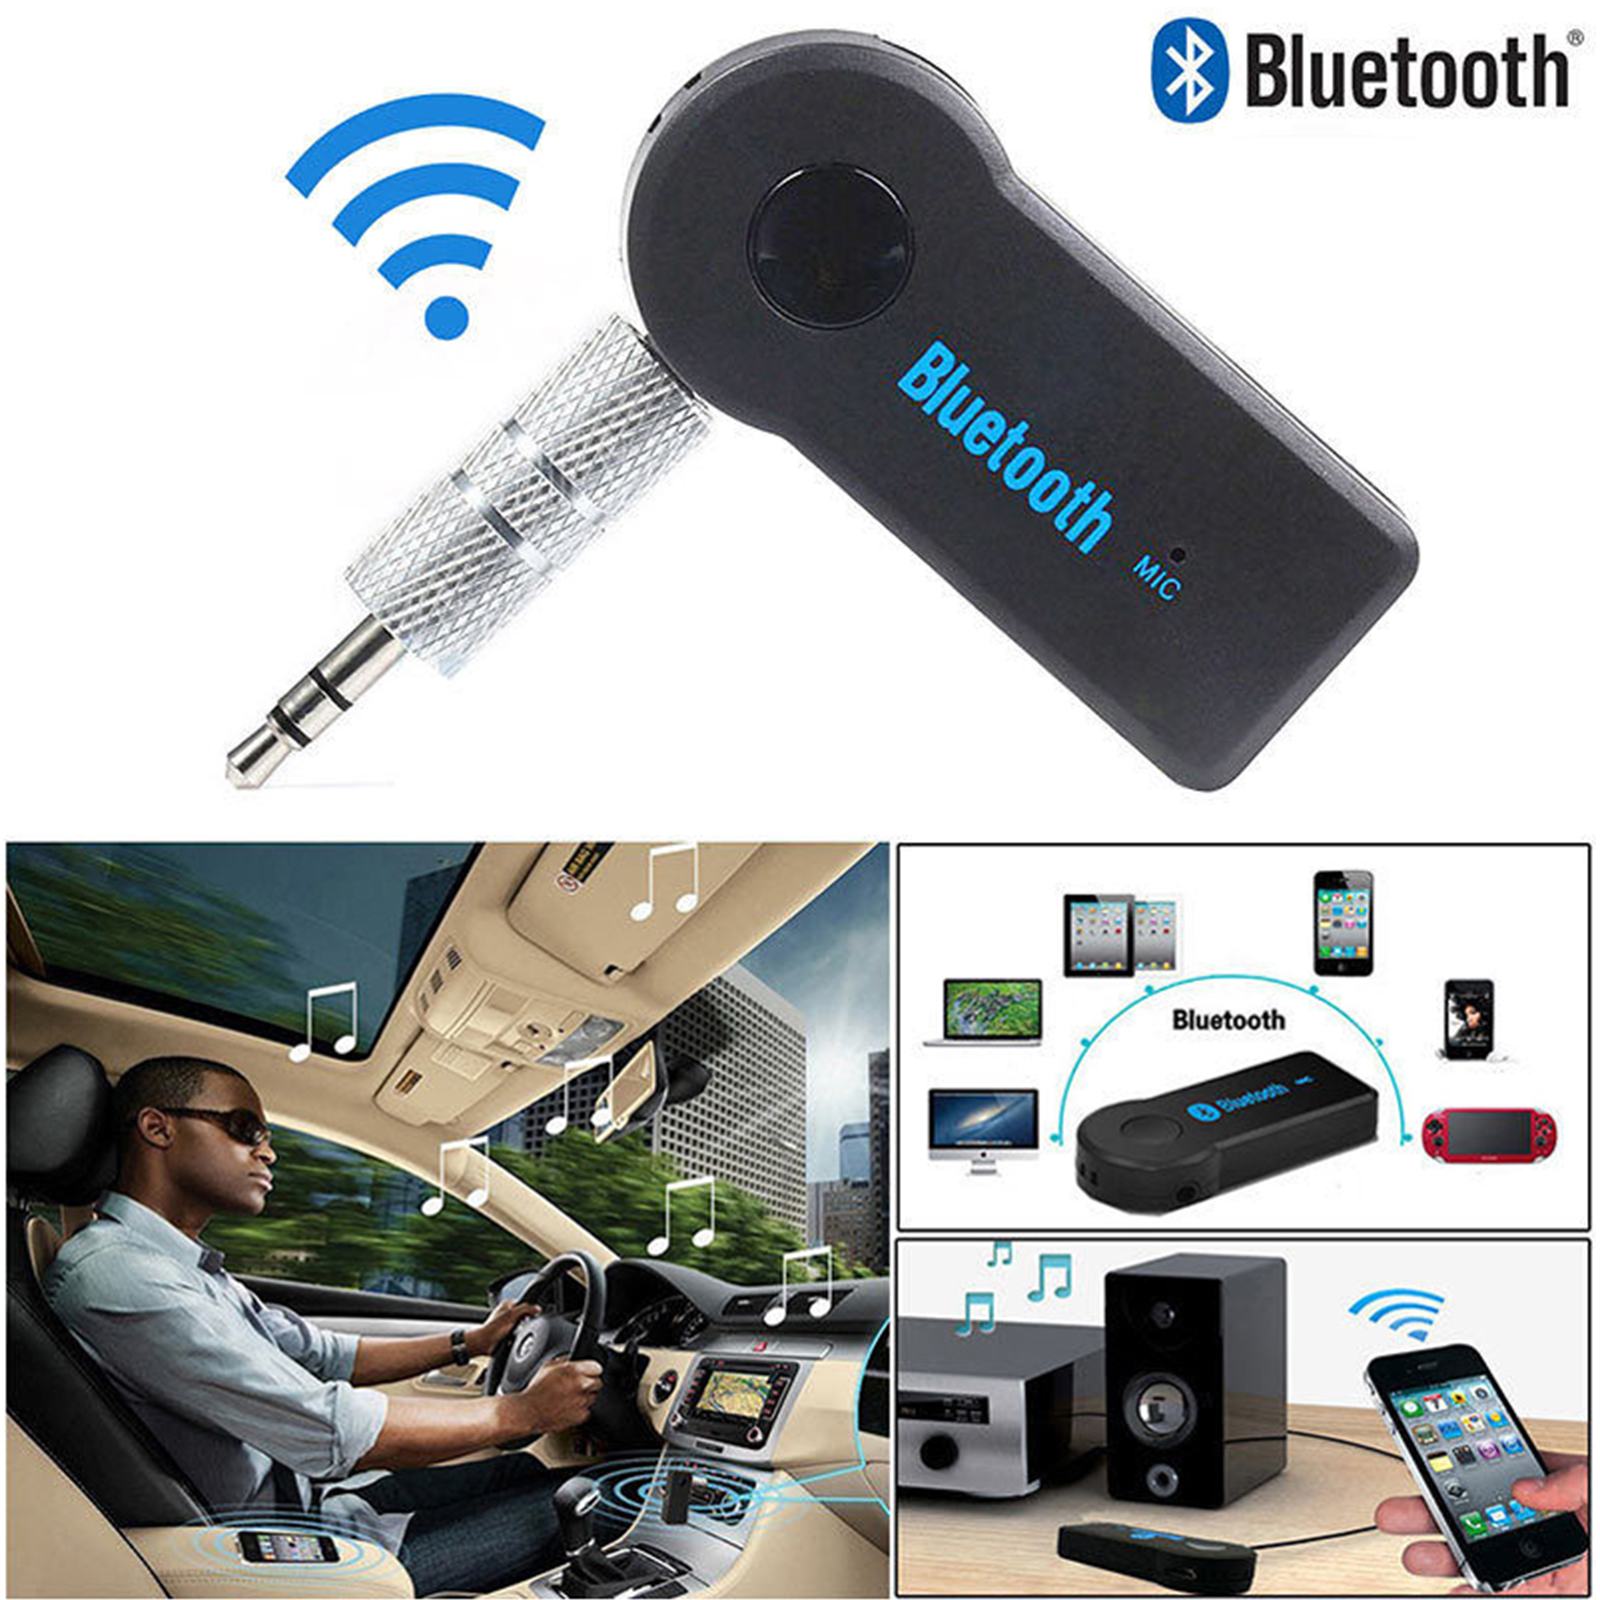 EEEKit Bluetooth Receiver, Wireless 3.5mm AUX Audio Stereo Music Home Car Receiver Adapter Mic for Samsung Galaxy S9/S9 Plus/S8/S8 Plus/Note 9/8/5/S7/Edge/Act